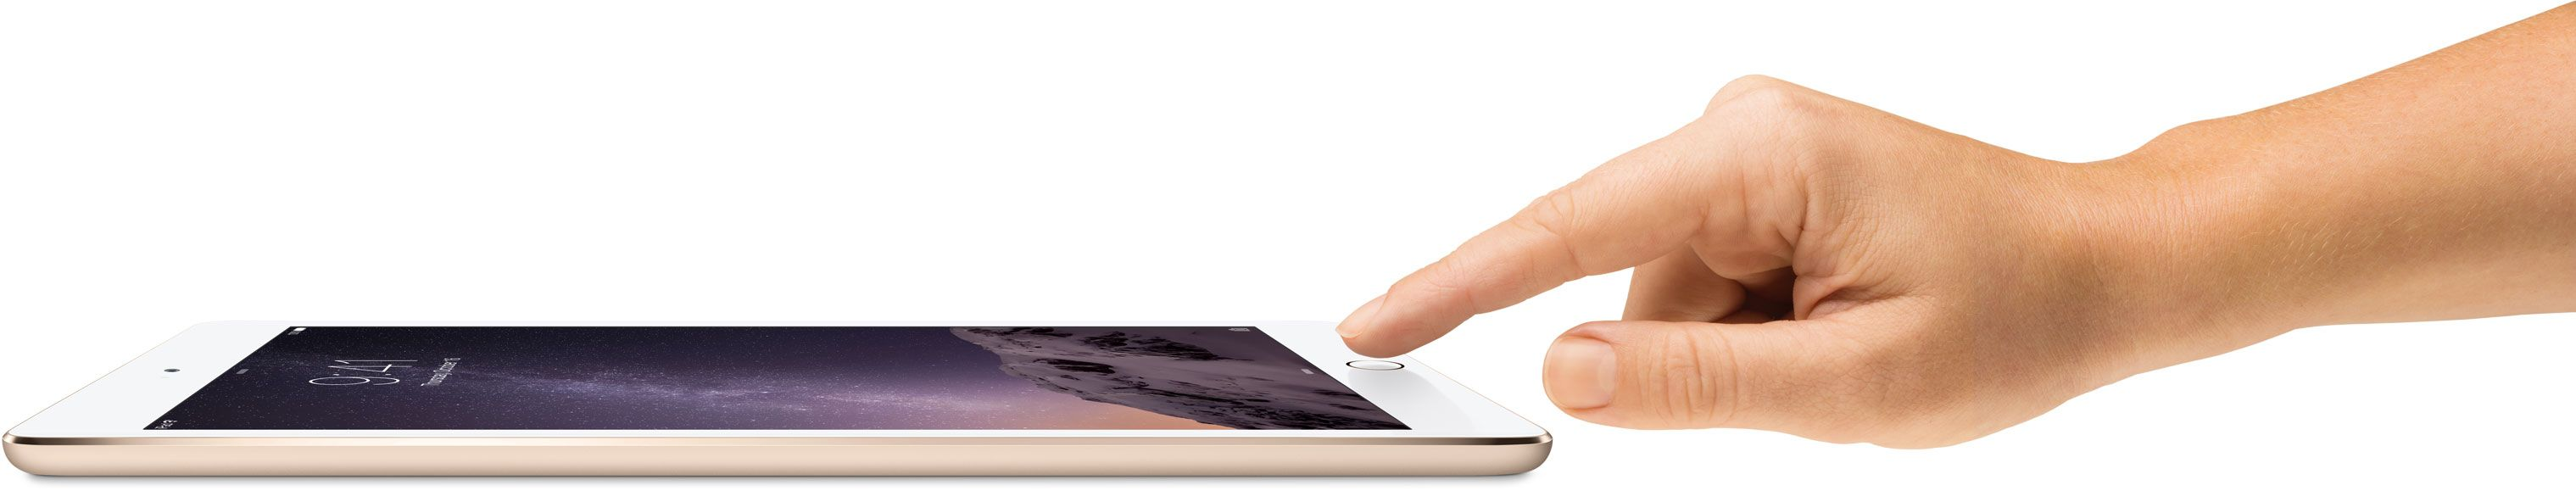 Awesome Apple iPad Air 2 Gallery